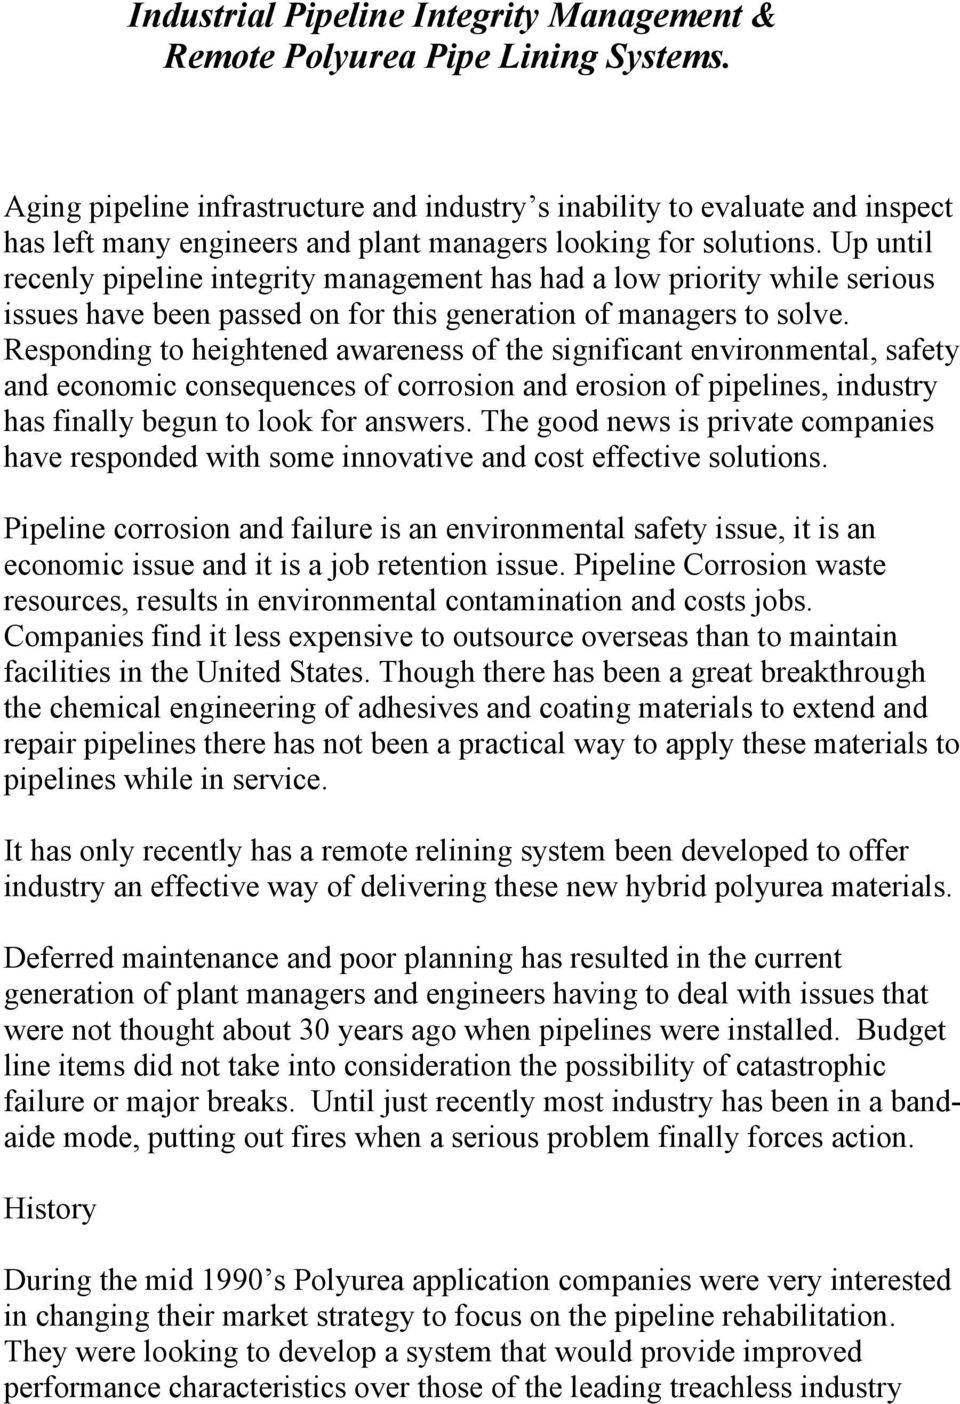 Up until recenly pipeline integrity management has had a low priority while serious issues have been passed on for this generation of managers to solve.